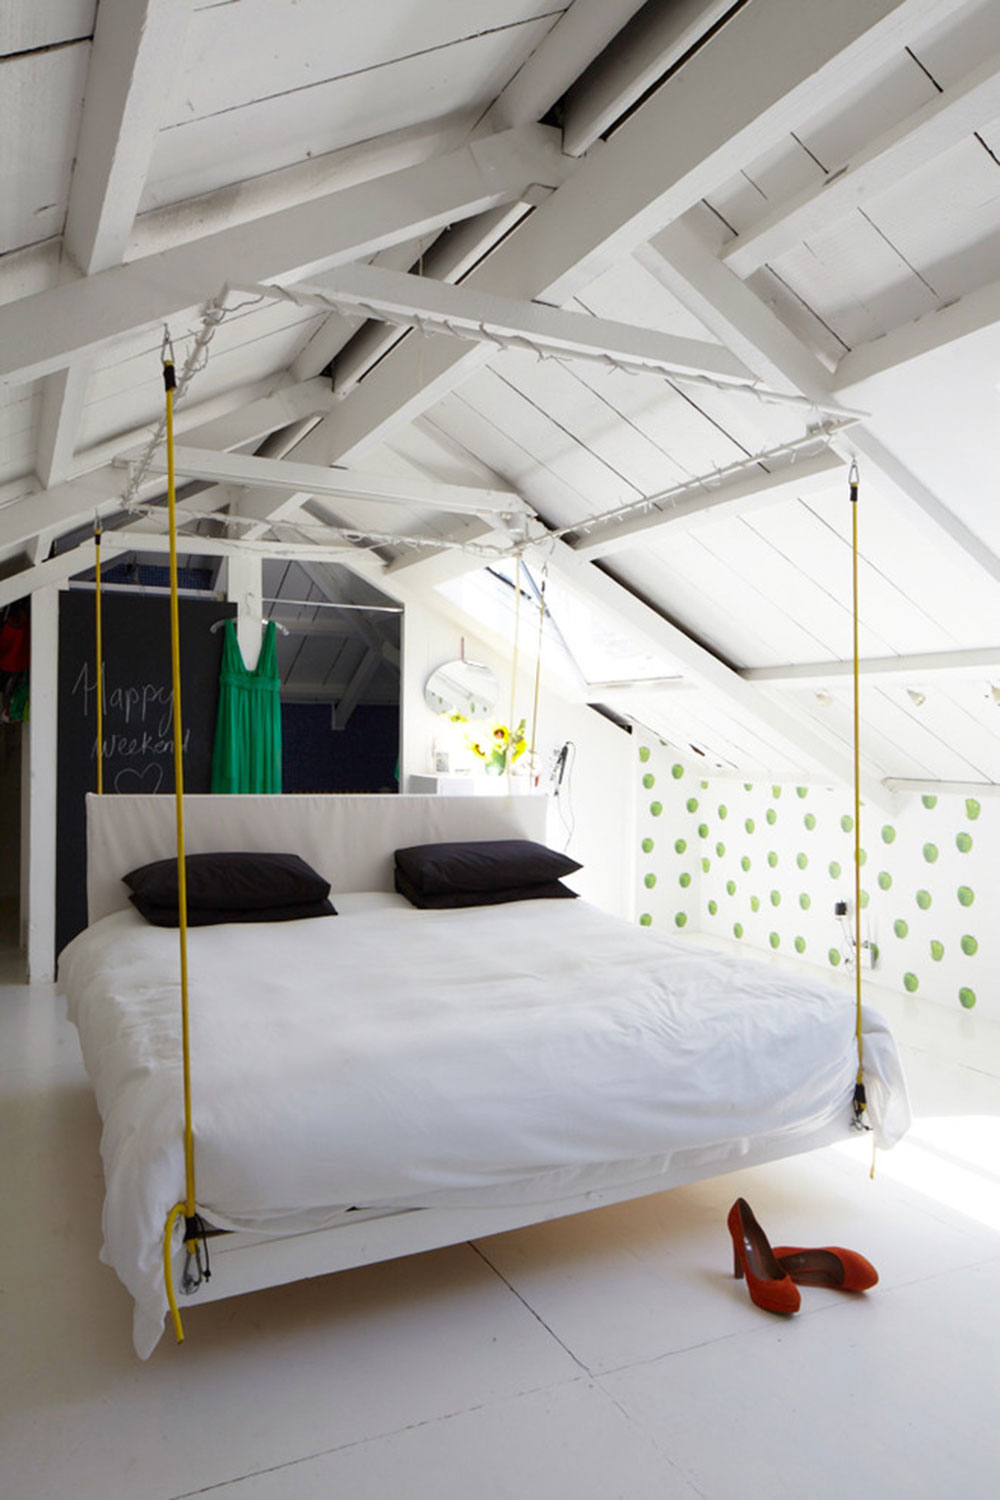 Creative-Hanging-Beds-Ideas-For-Amazing-Homes9 Creative Hanging Beds